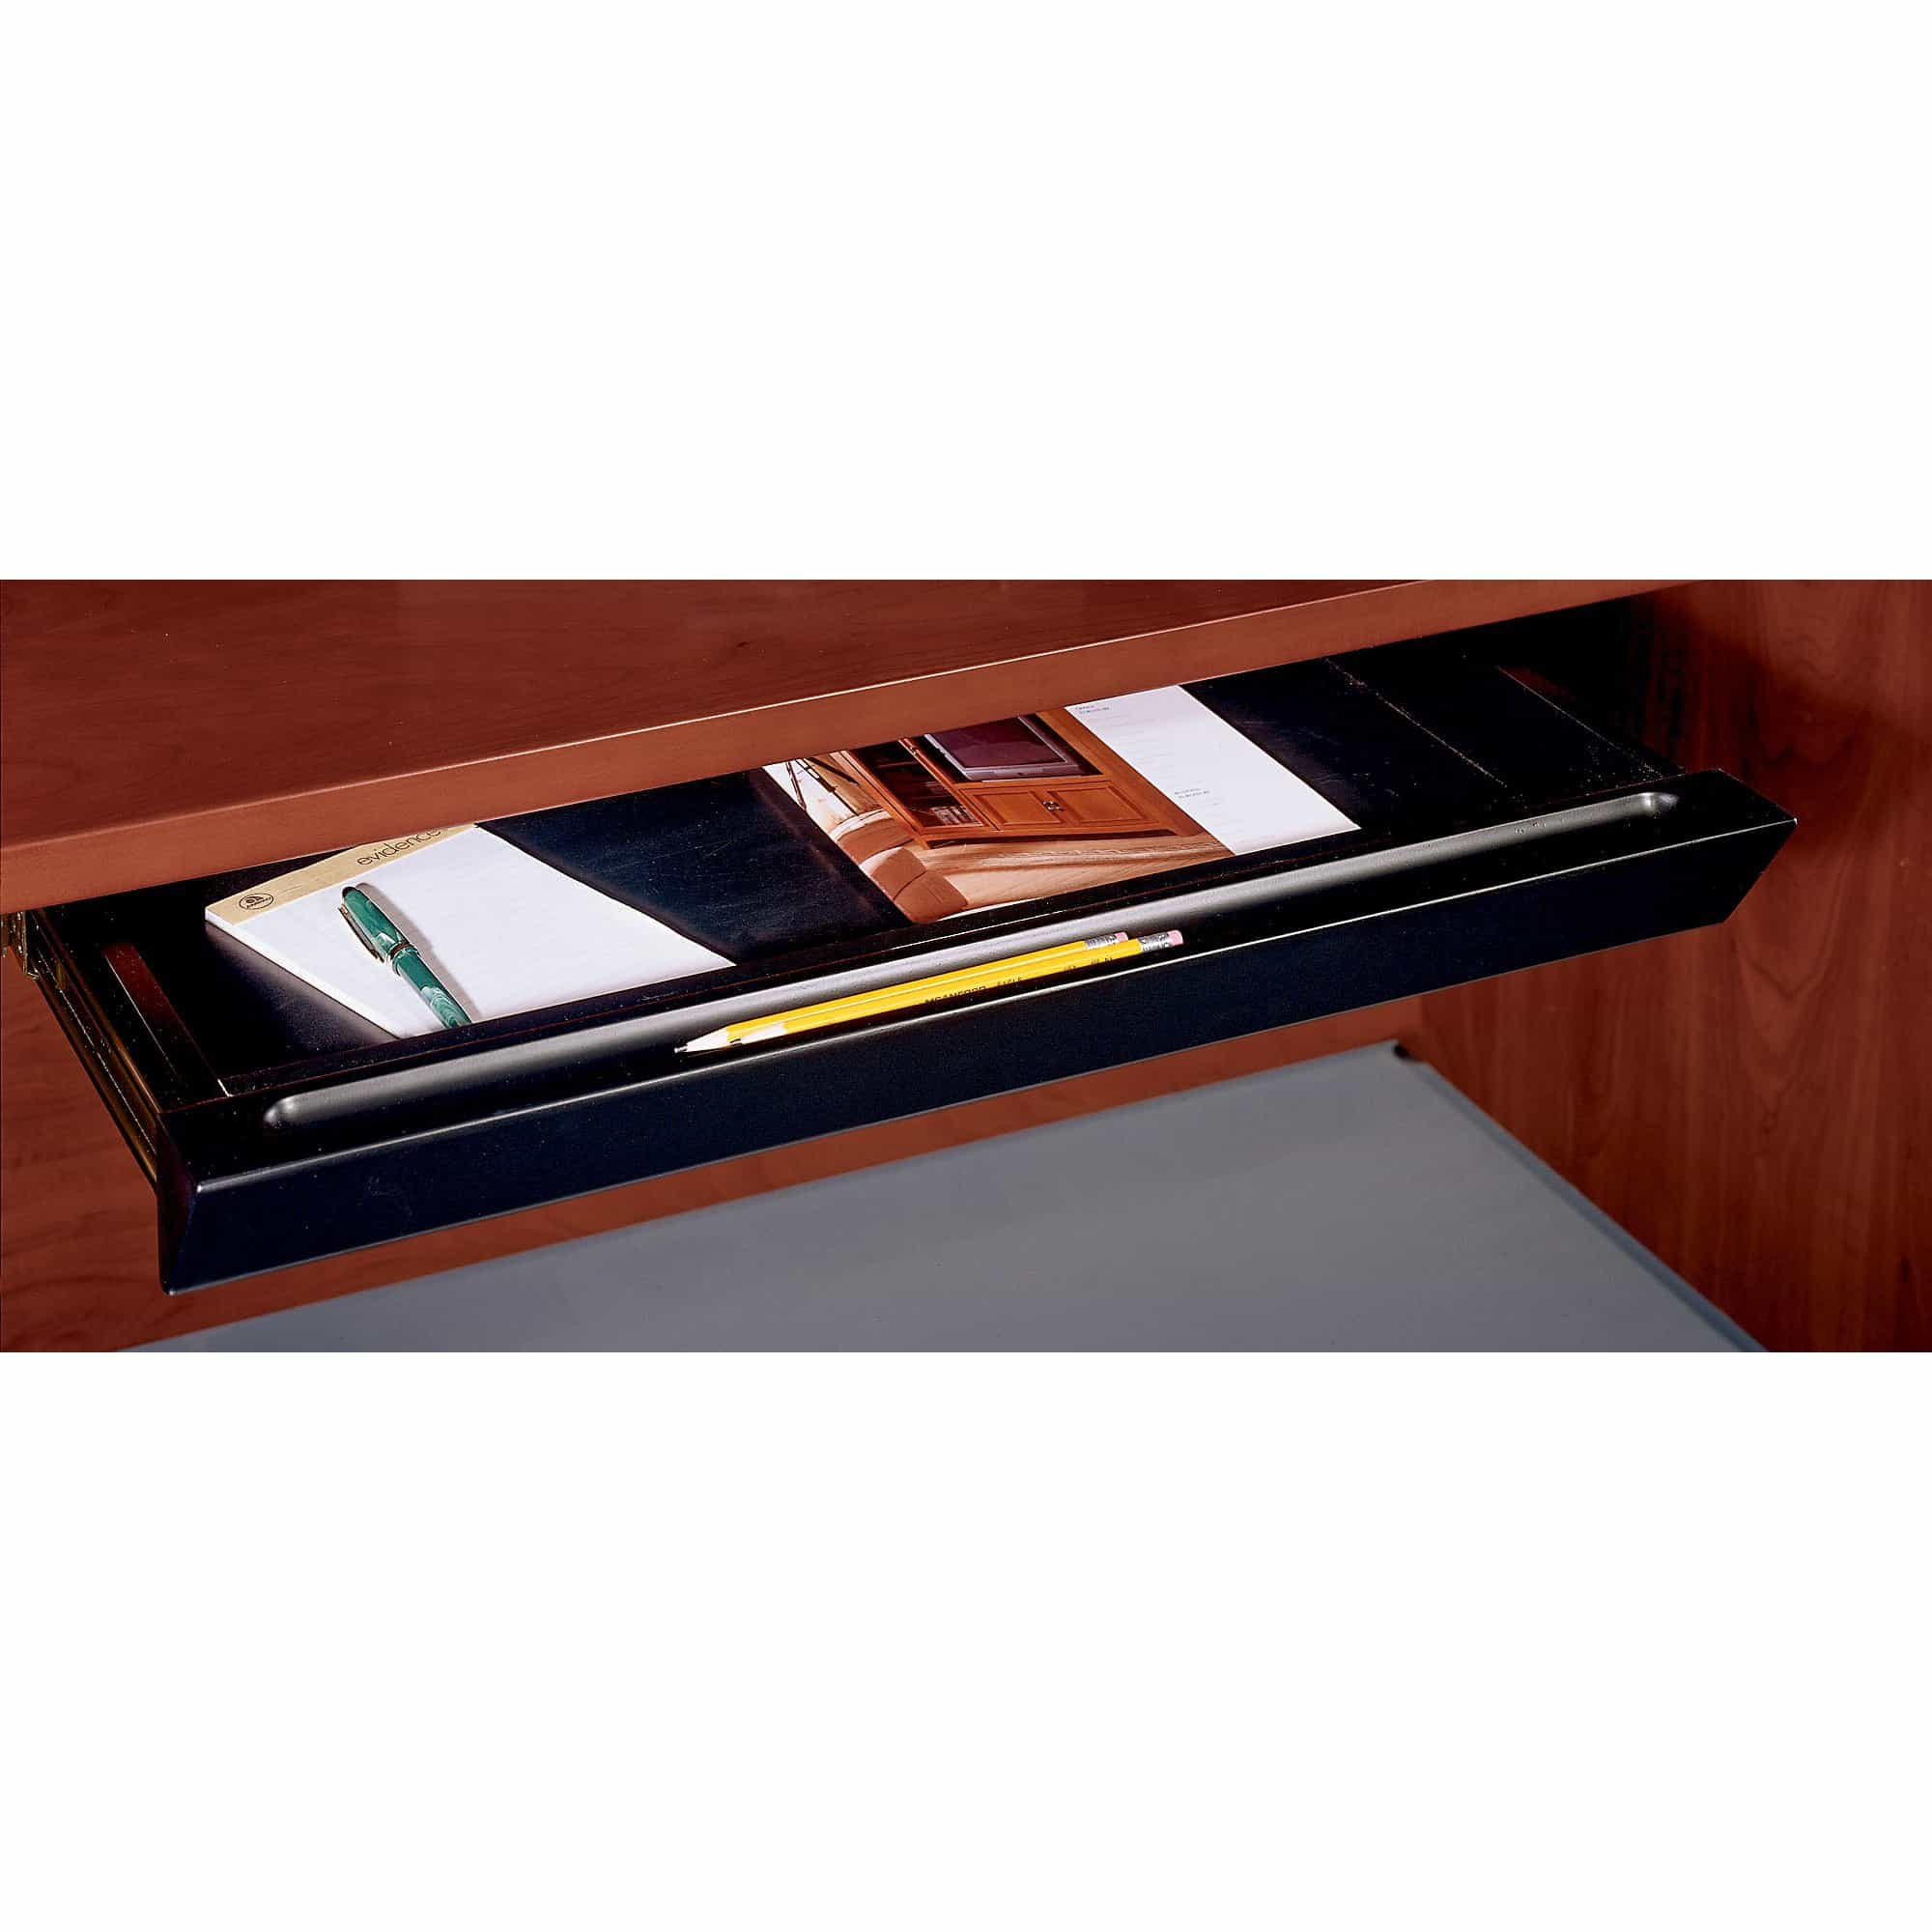 bedinhome - Bush Business Furniture Office & Desk Accessories Black Pencil Drawer - Bush Business Furniture - Pencil Drawer